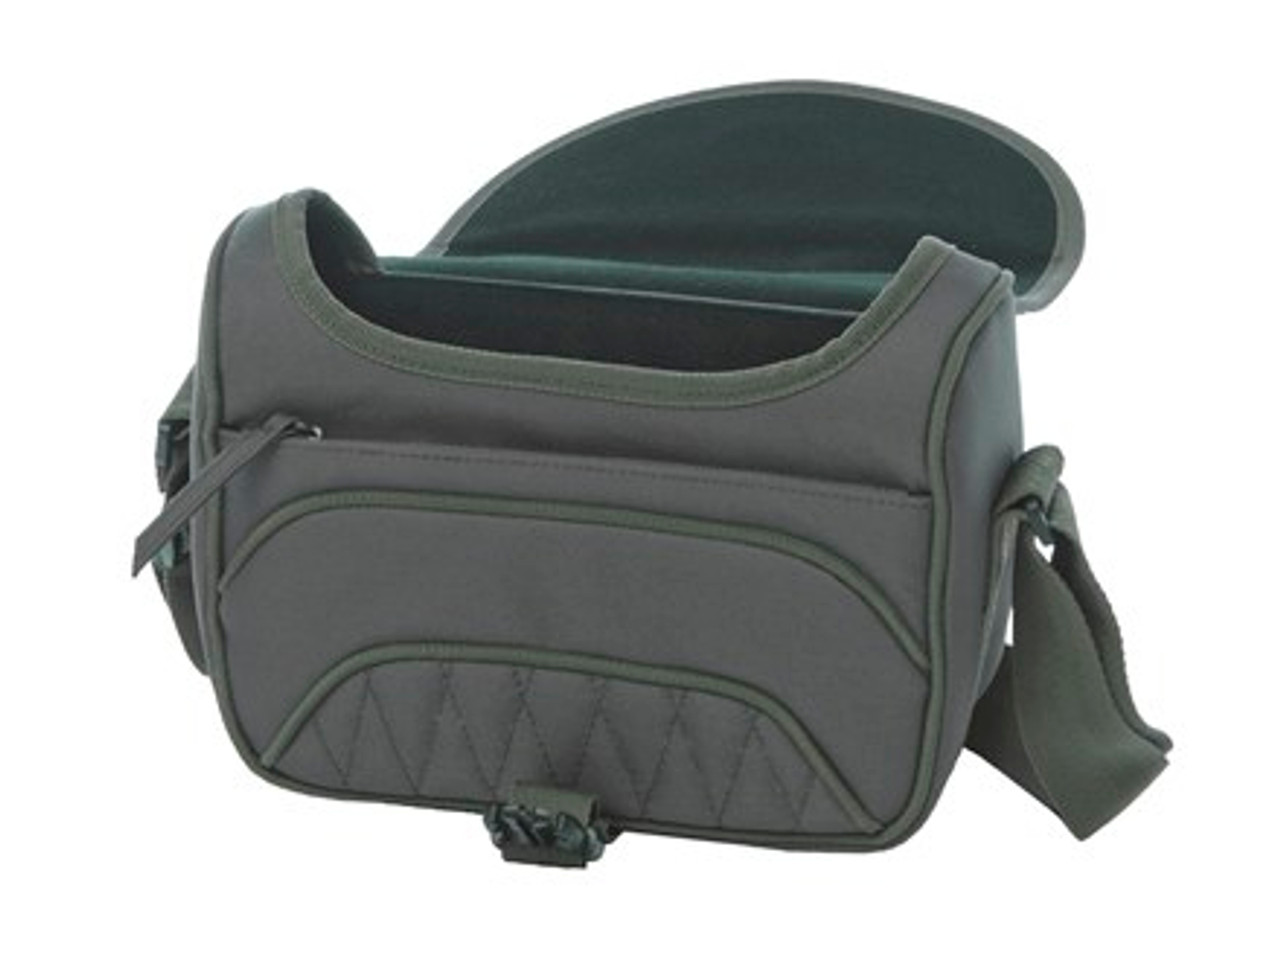 Beretta gamekeeper large cartridge bag open, shooting accessories